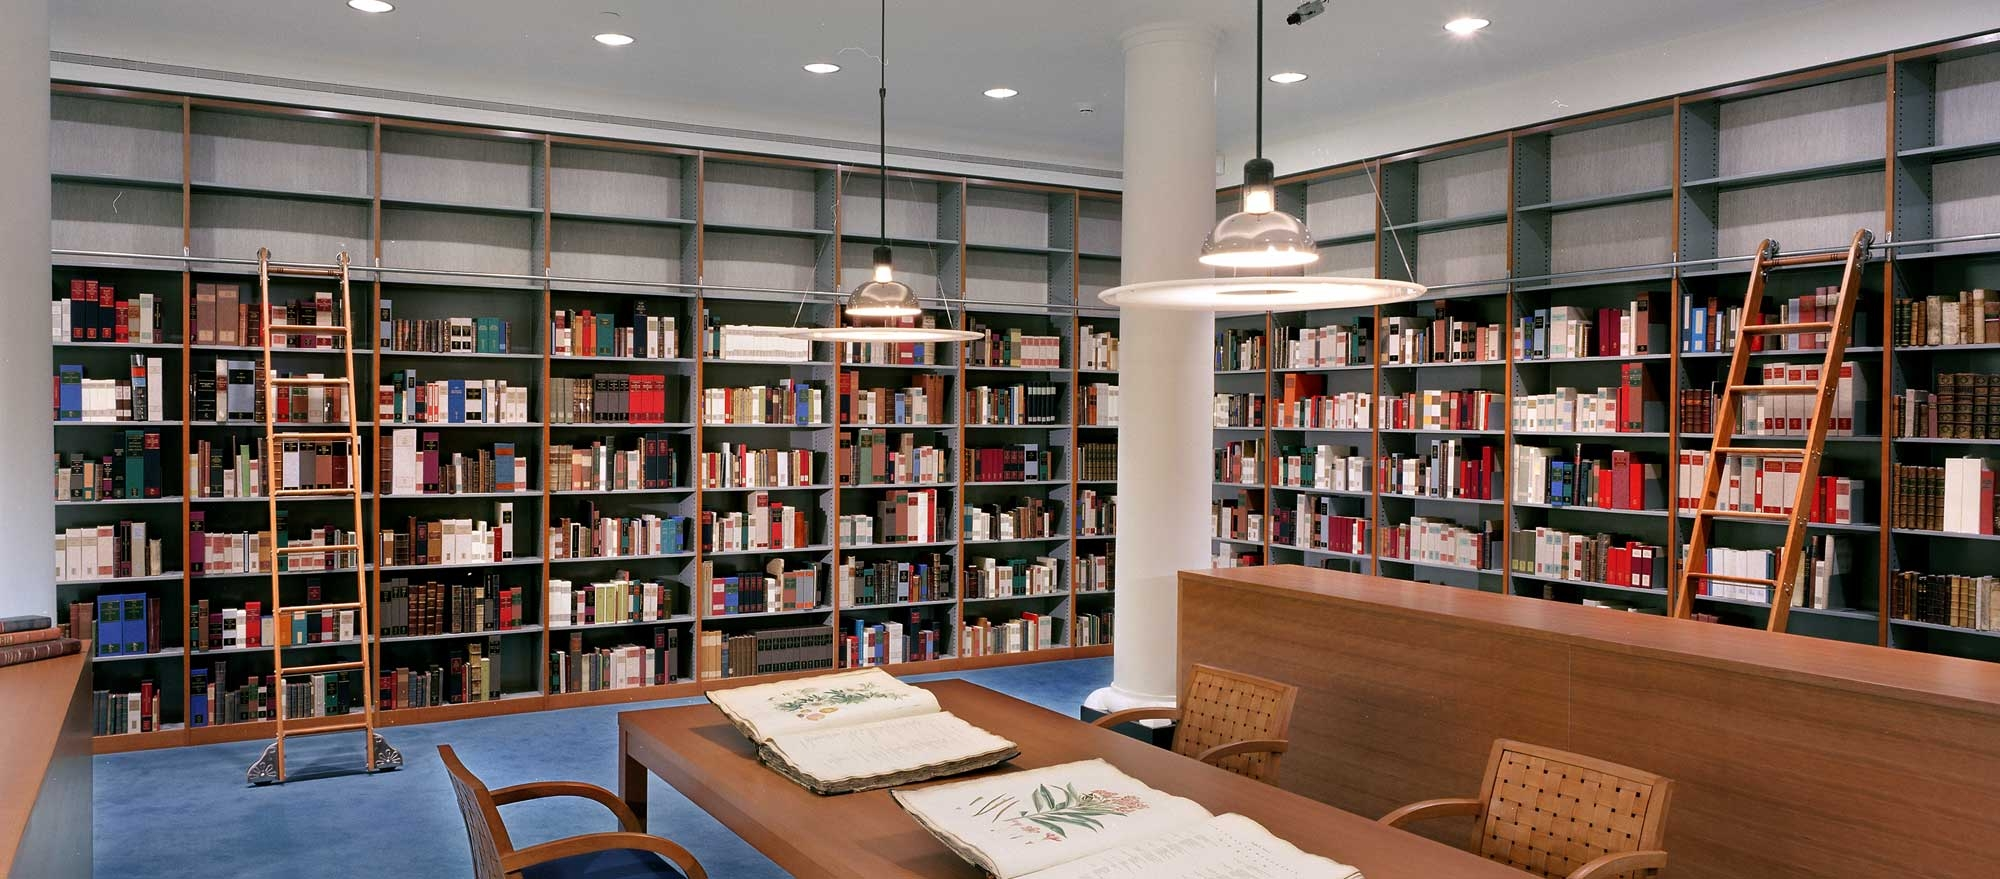 Library Shelving Cantilever Book Shelves Bookcases With Library Wall Bookshelves (#11 of 15)